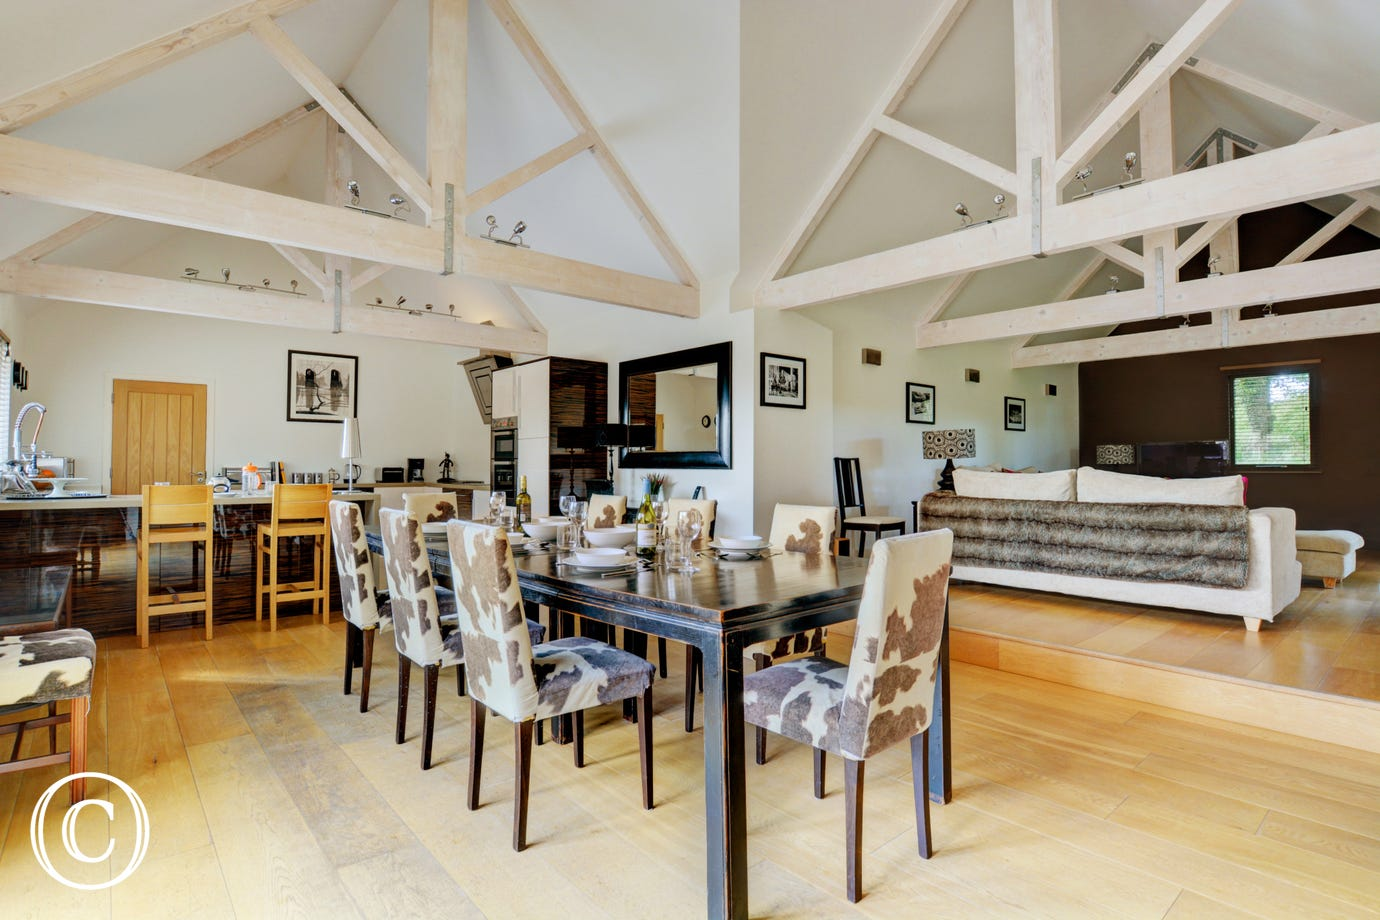 Dining table and chairs, perfect for a social meal at the end of a busy day exploring!